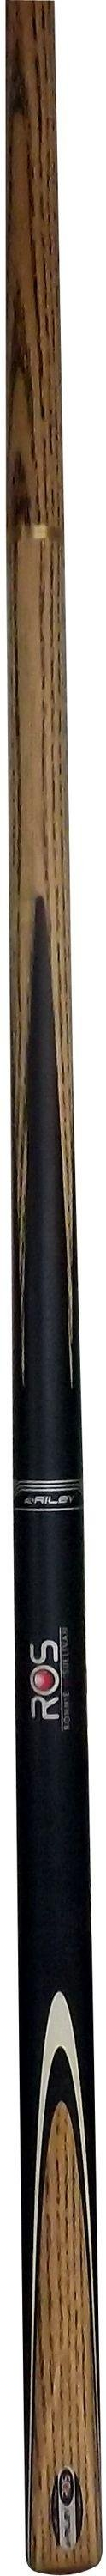 Riley Ronnie O`Sullivan Snooker Cue with Extensions.